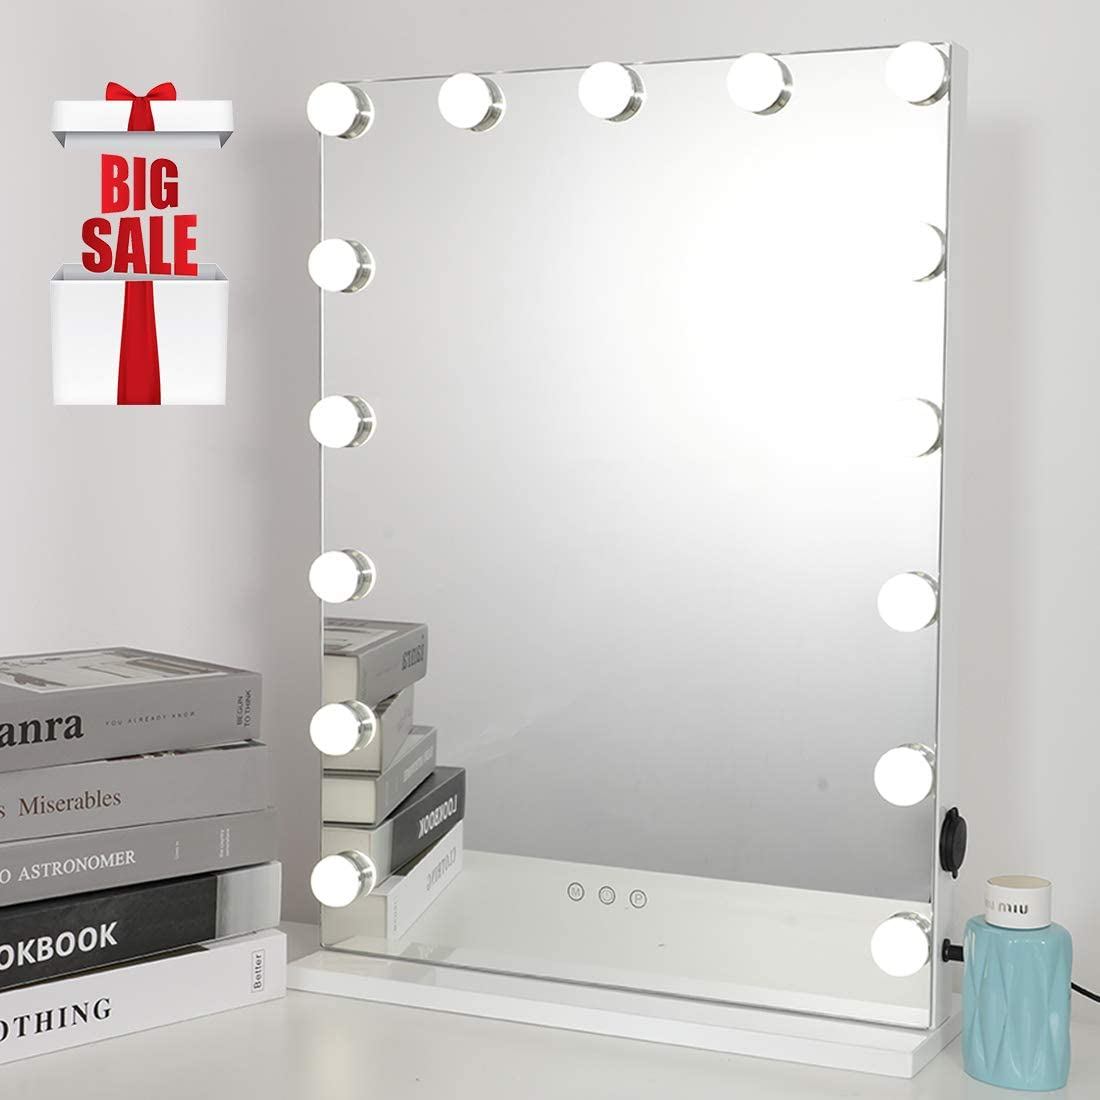 iCREAT Hollywood Makeup Mirror, Touchscreen Control Vanity Mirror, Multiple Color Modes Cosmetic Mirror, Lighted Mirror with 15 Dimmable Bulbs, White